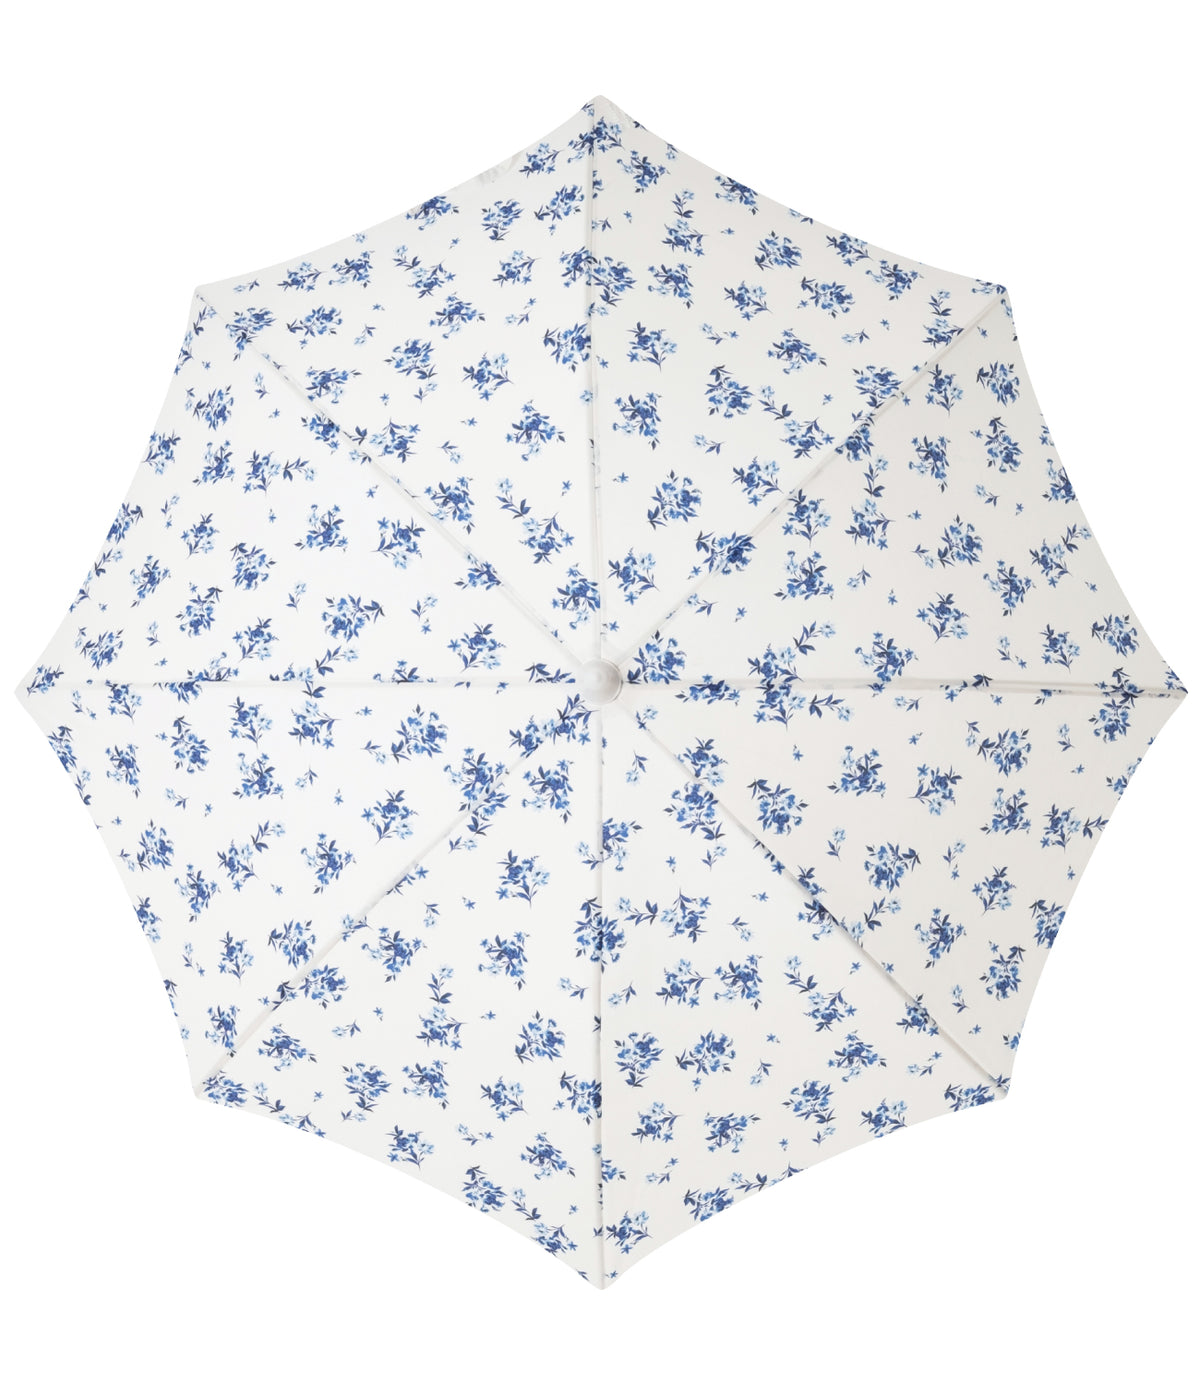 The Holiday Beach Umbrella - Stone Cold Fox Prairie